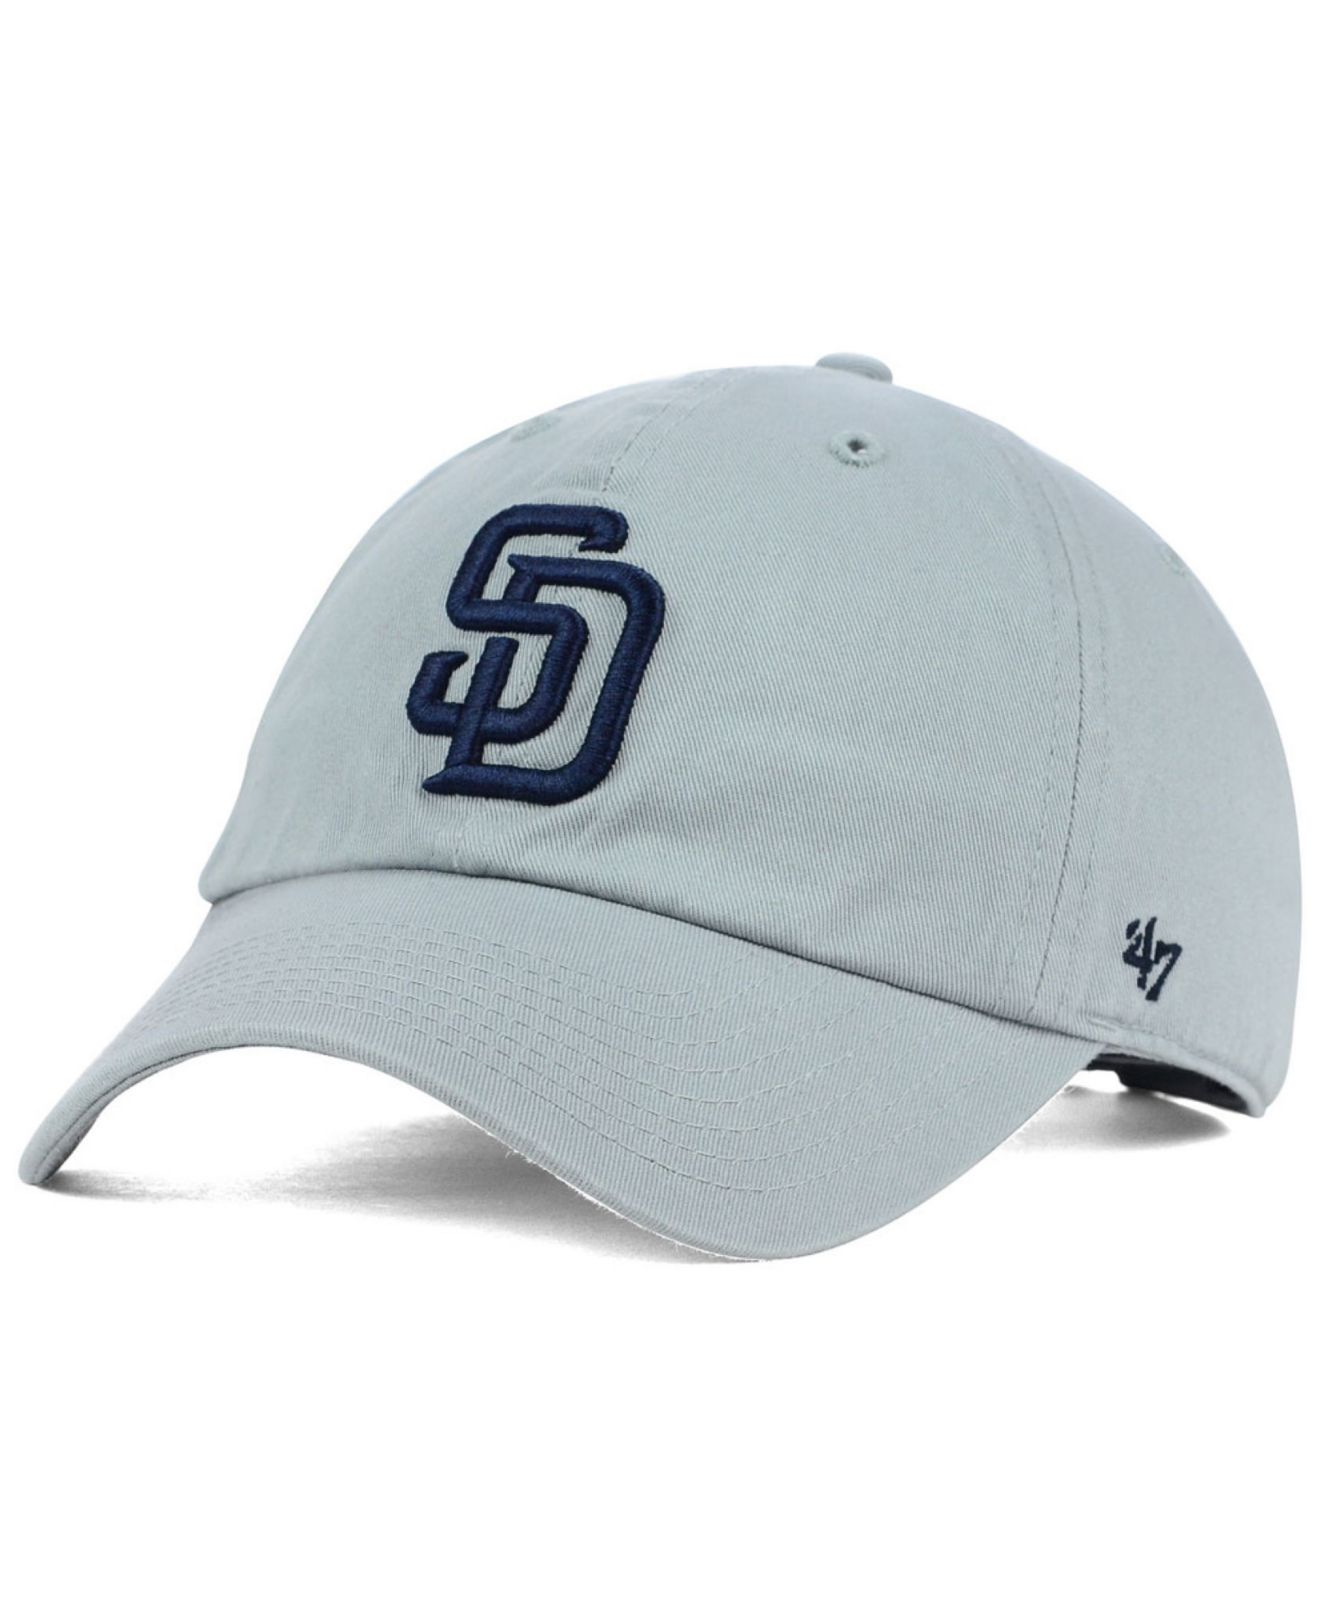 39711ce5c4191 ... cleanup hat 8c03a 56a96  purchase lyst 47 brand san diego padres  adjustable cap in gray for men 7765c 0037a